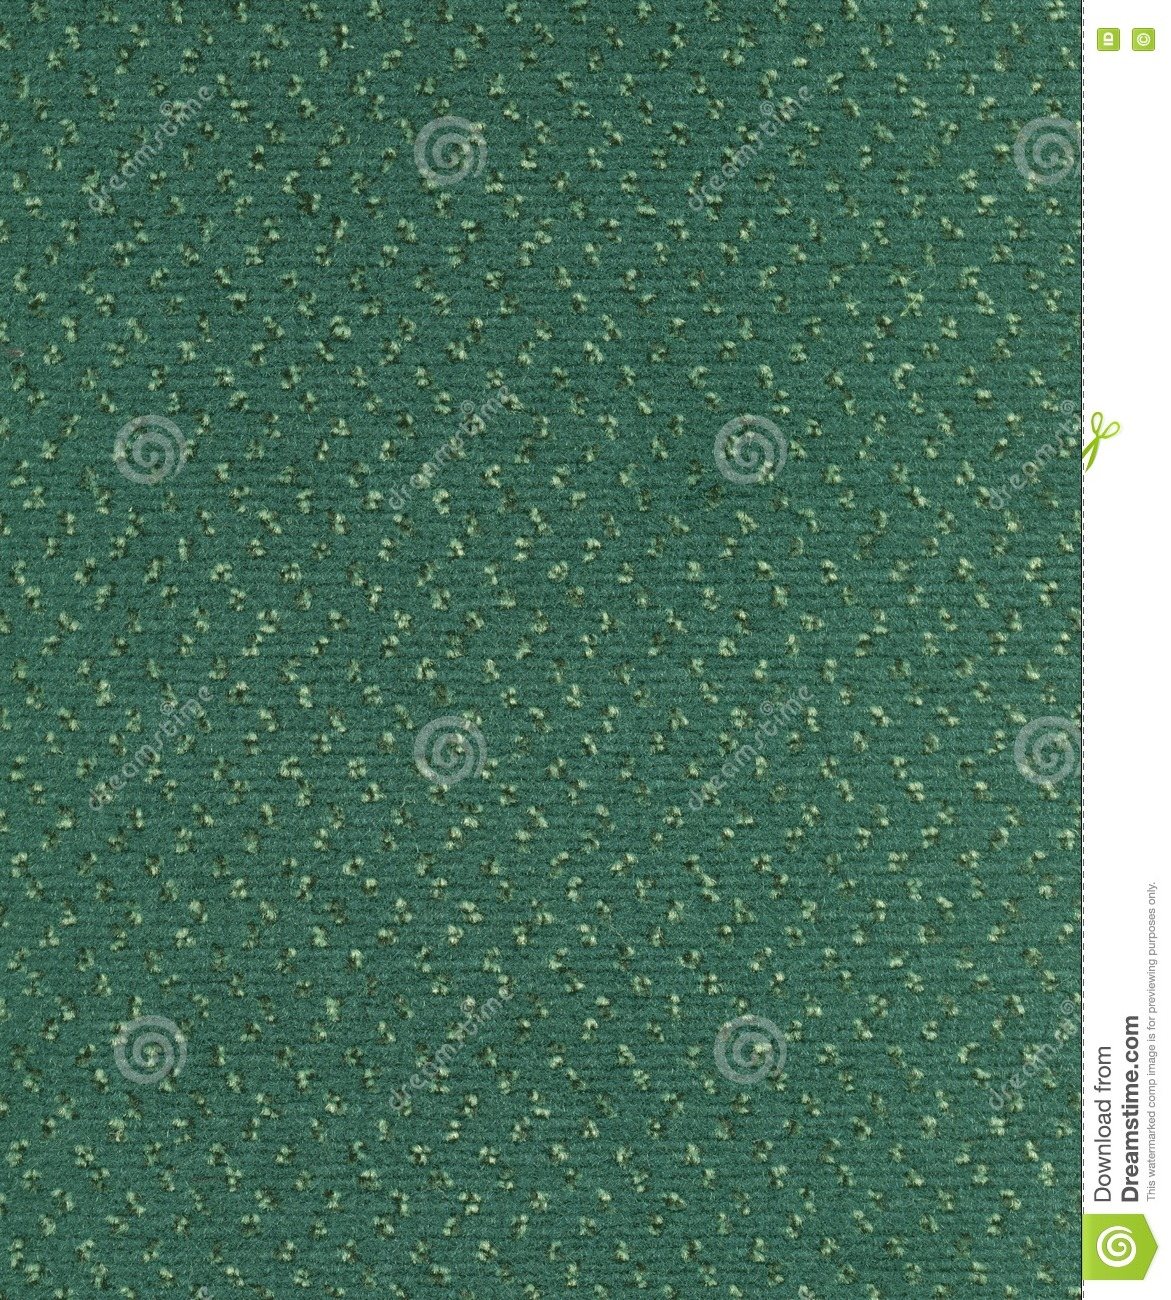 Green Carpet Texture Stock Photo Image Of Pattern